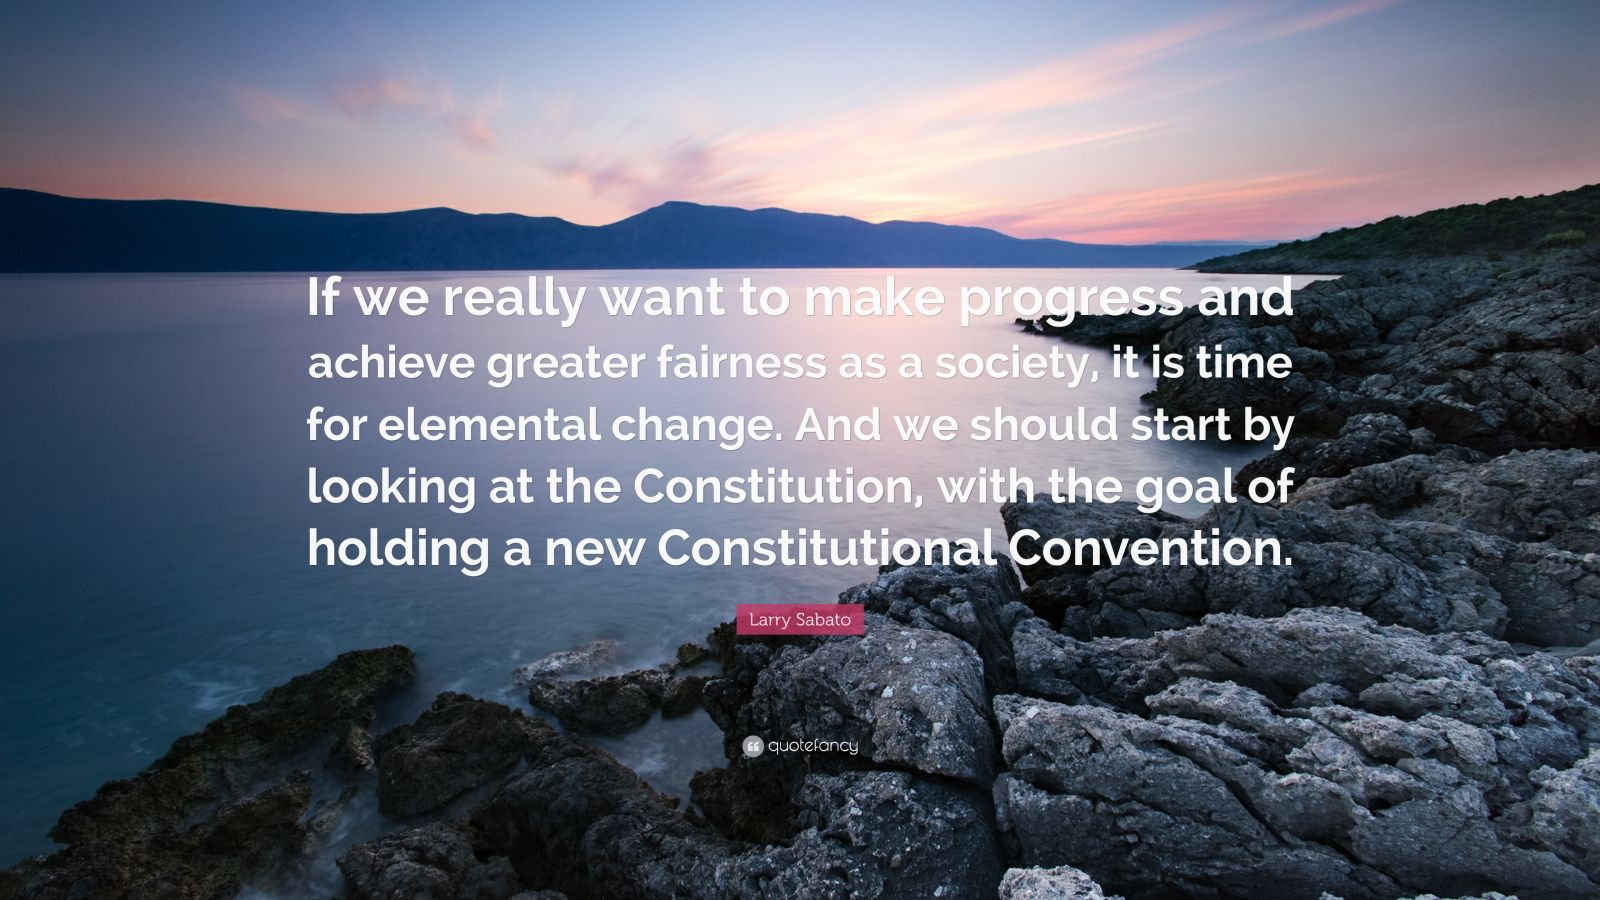 "Larry Sabato Quote: ""If we really want to make progress and achieve greater fairness as a society, it is time for elemental change. And we should start by looking at the Constitution, with the goal of holding a new Constitutional Convention."""